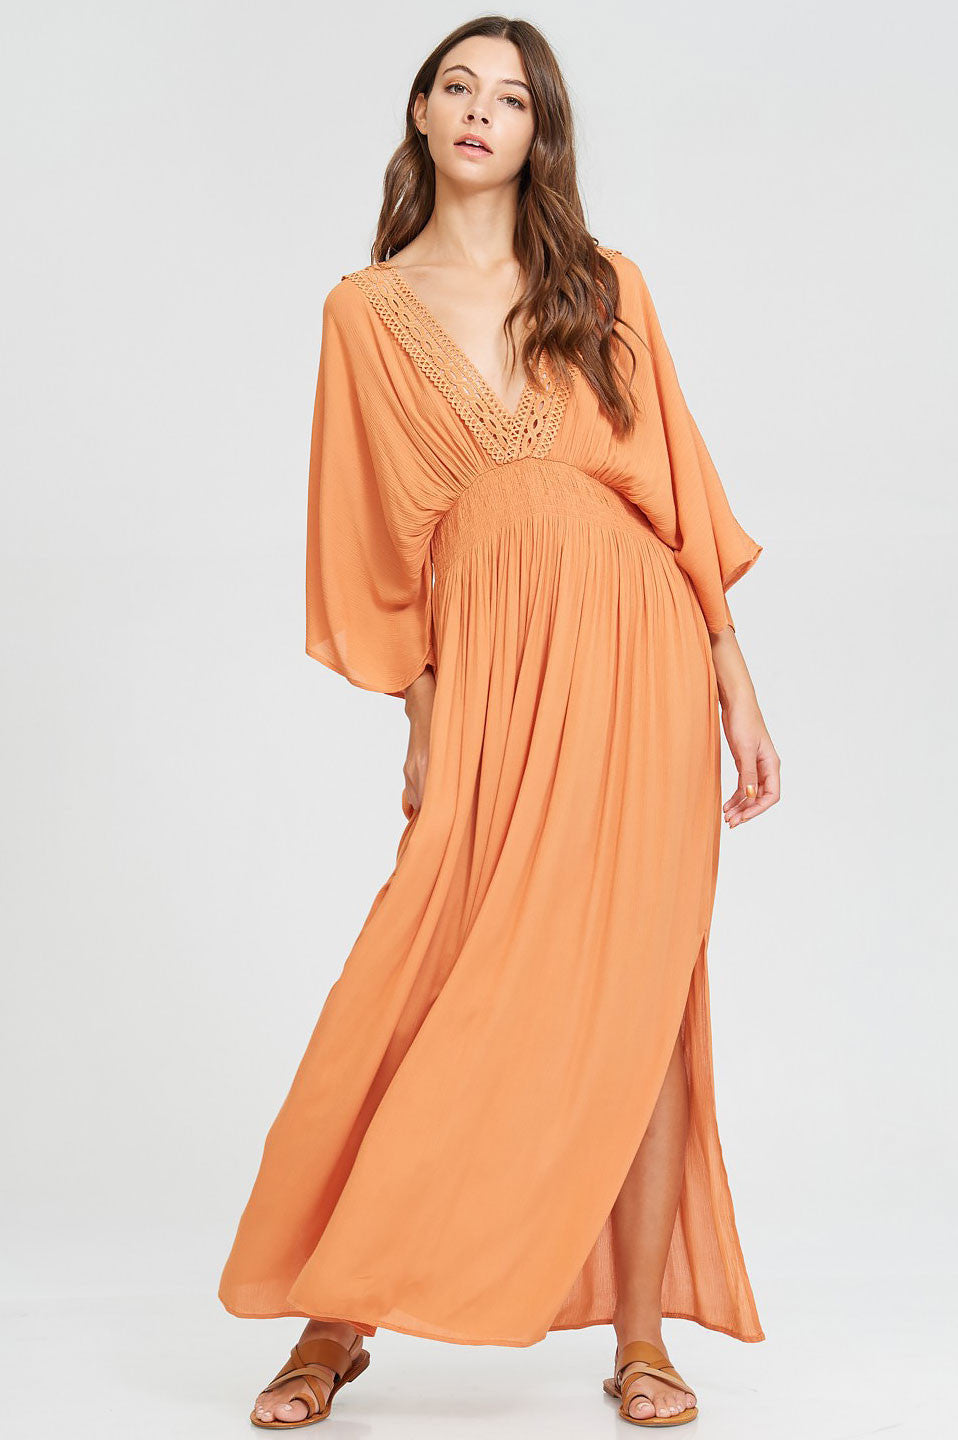 Women's deep v-neck 3/4 draped kimono sleeve long casual maxi dress for summer. Crochet lace trim with side slits. Apricot orange